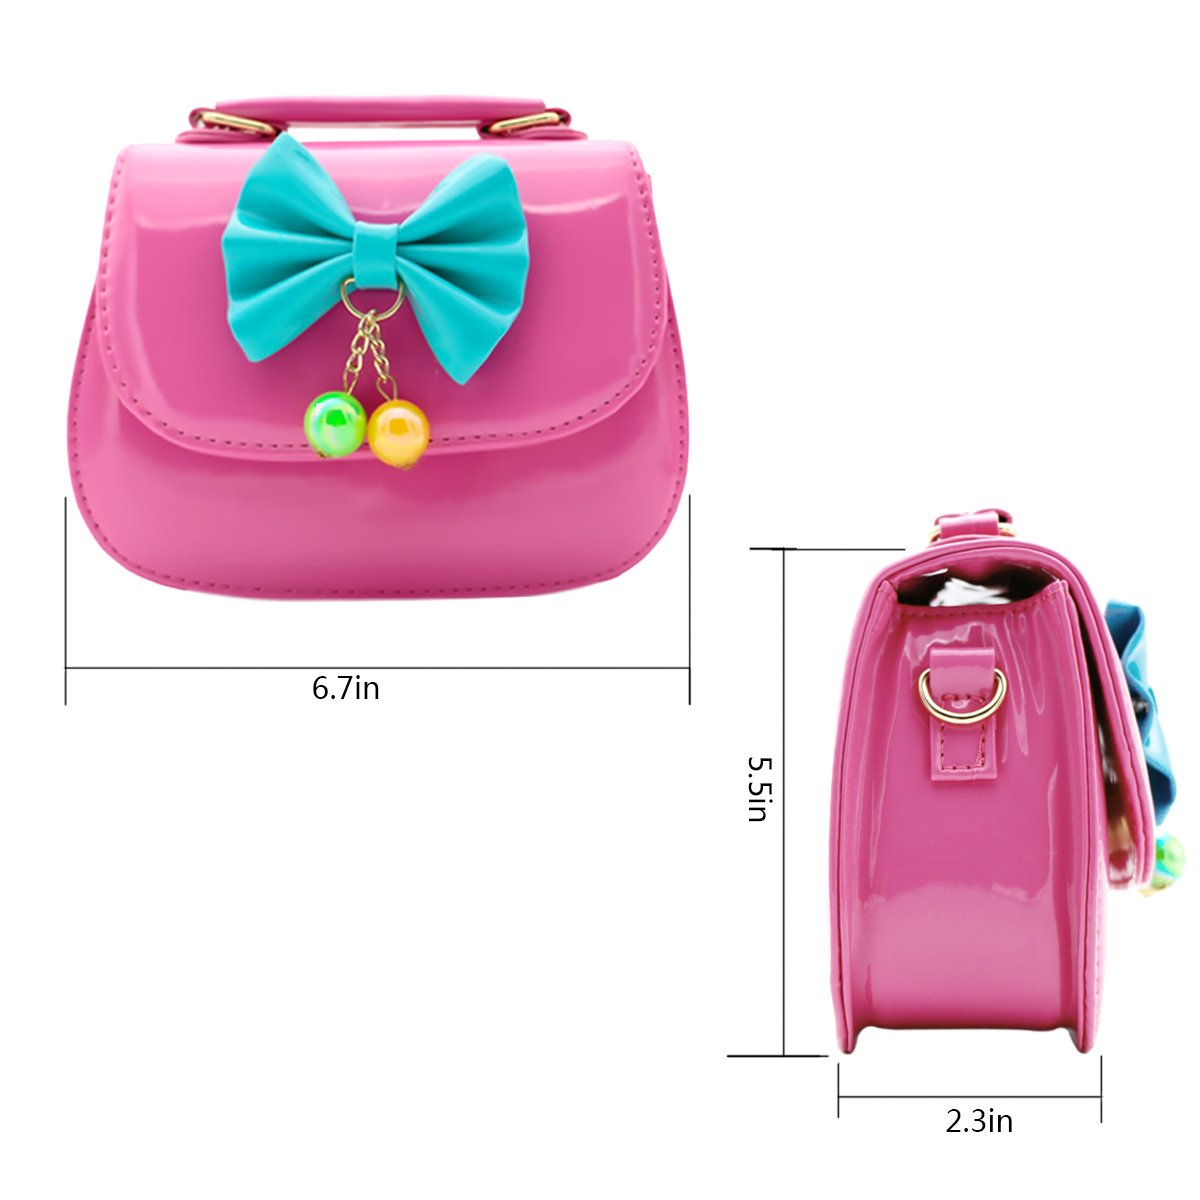 39978a3a372d Scheppend Fashion Little Girls Handbag Children Single-shoulder Bag Dual-purpose  Bag (Rosy larger image